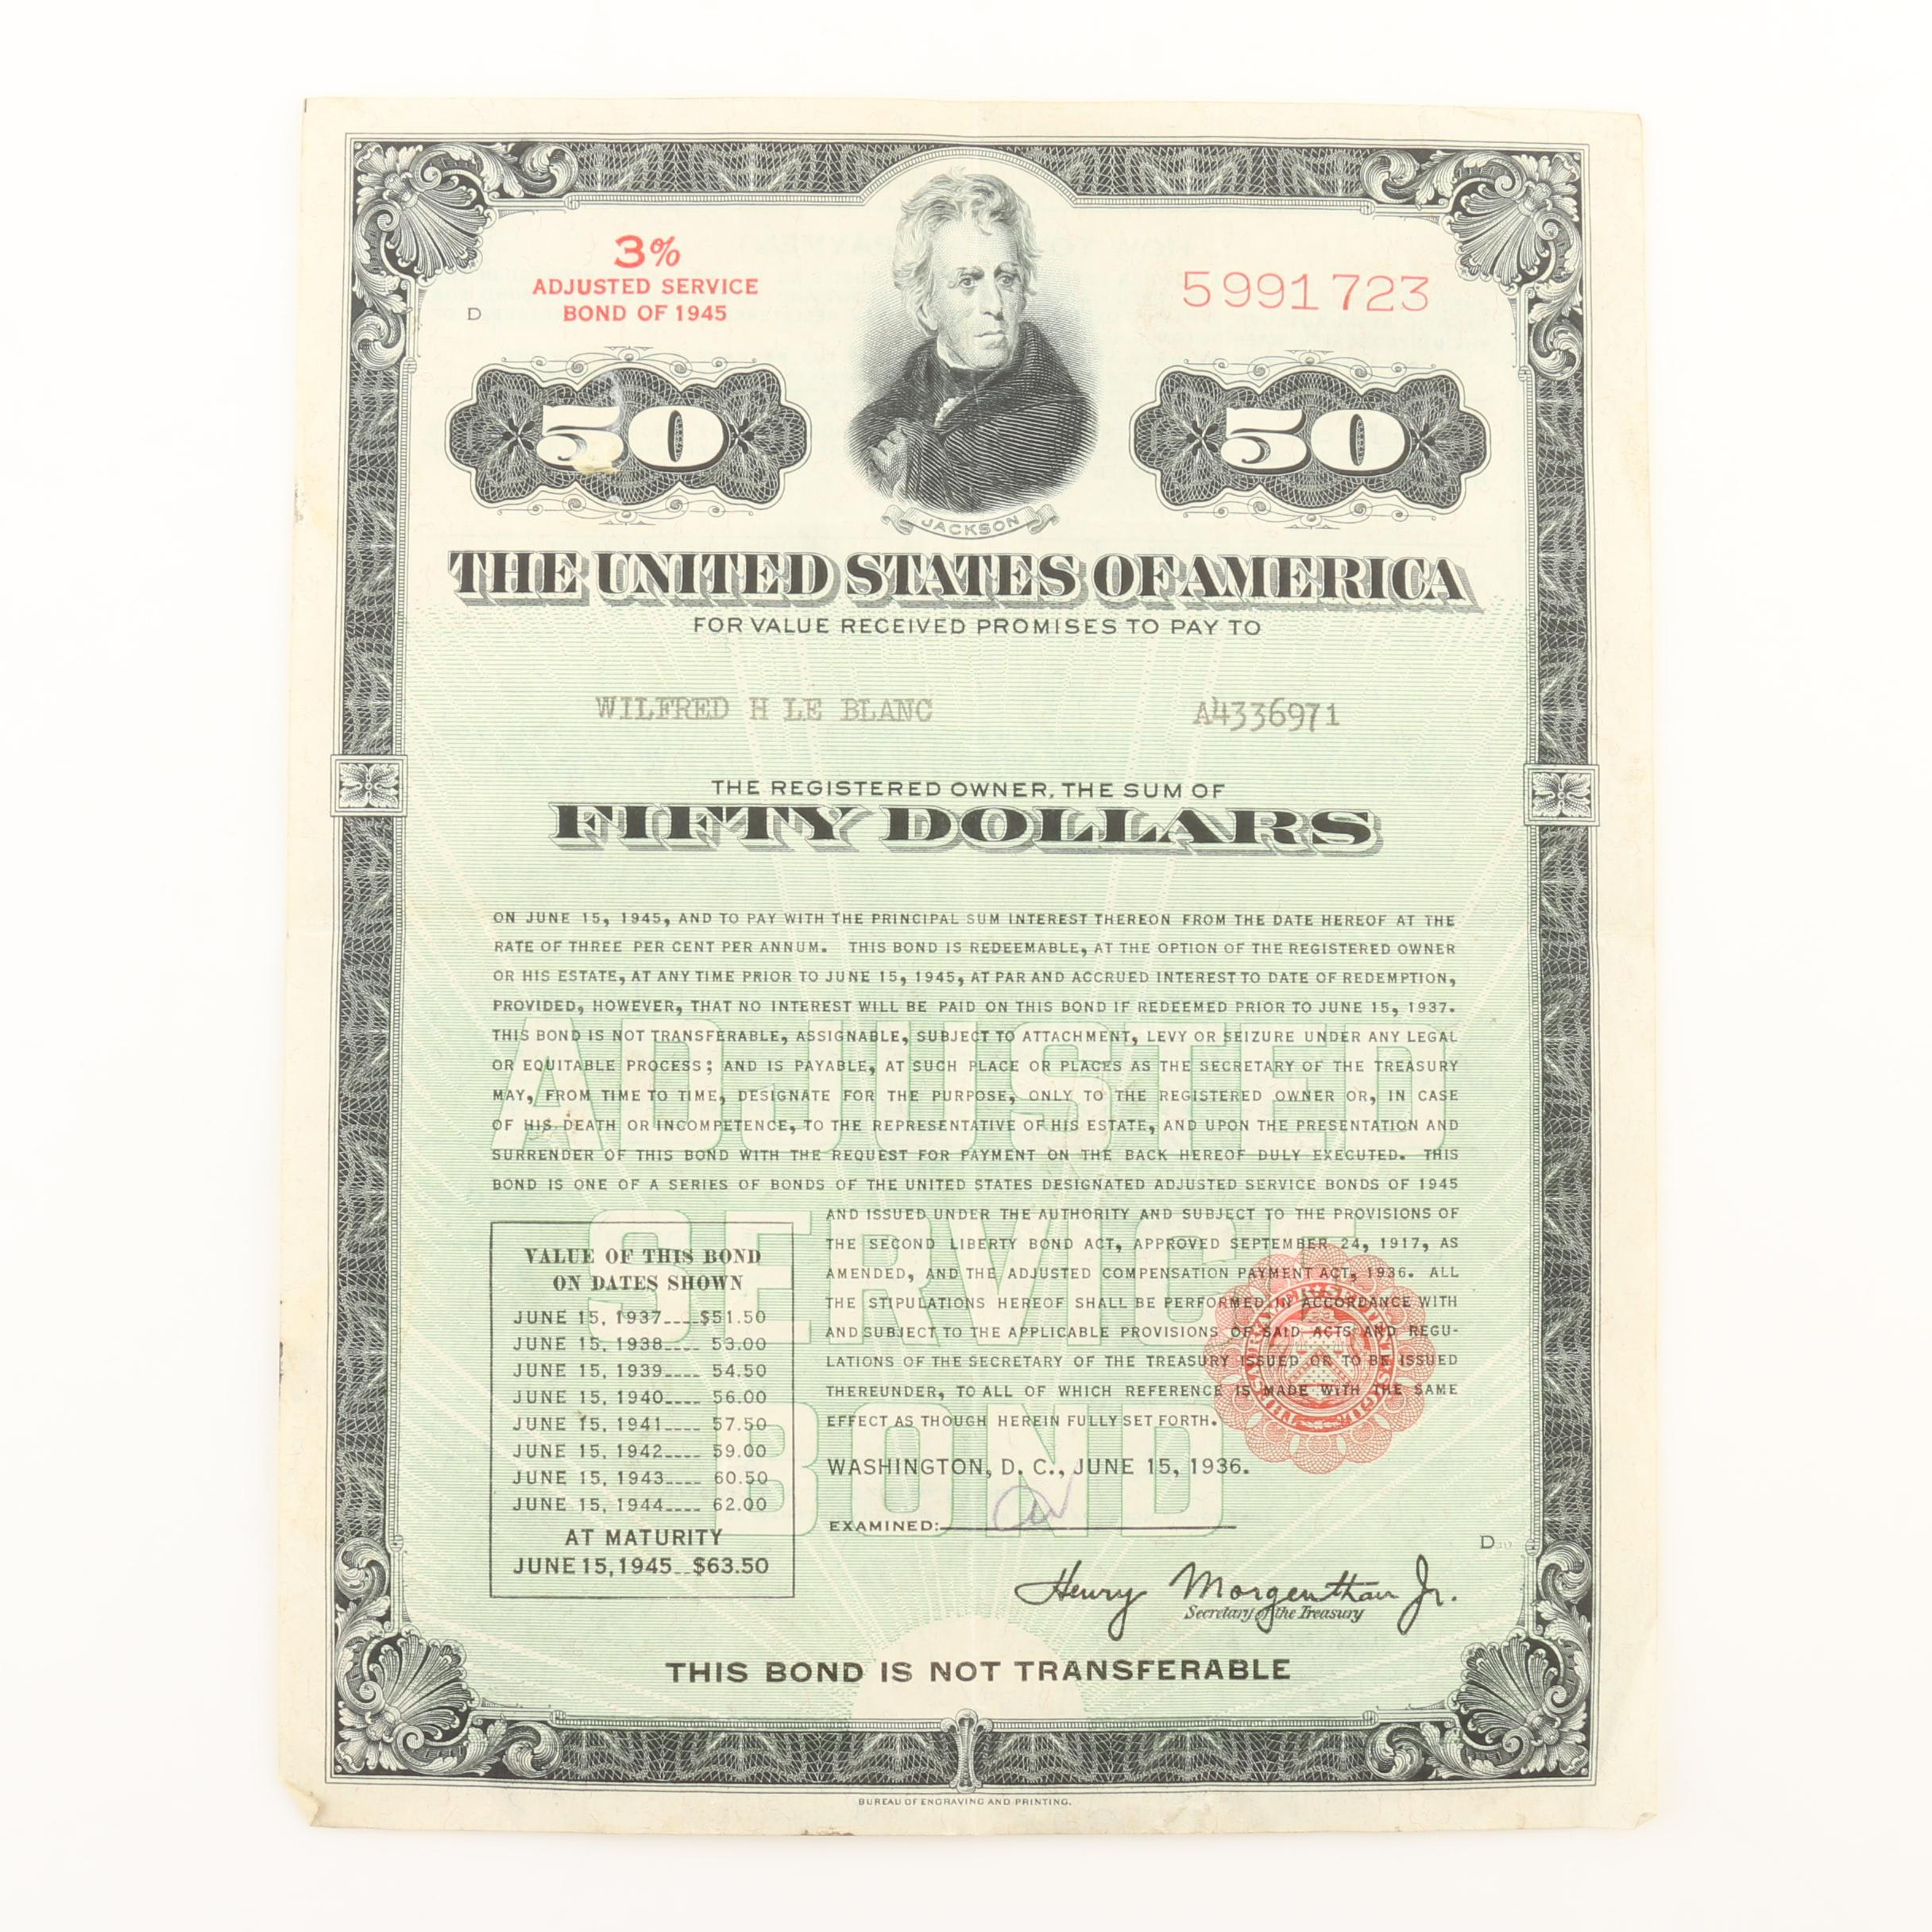 $50 3% Adjusted Service Bond from 1945